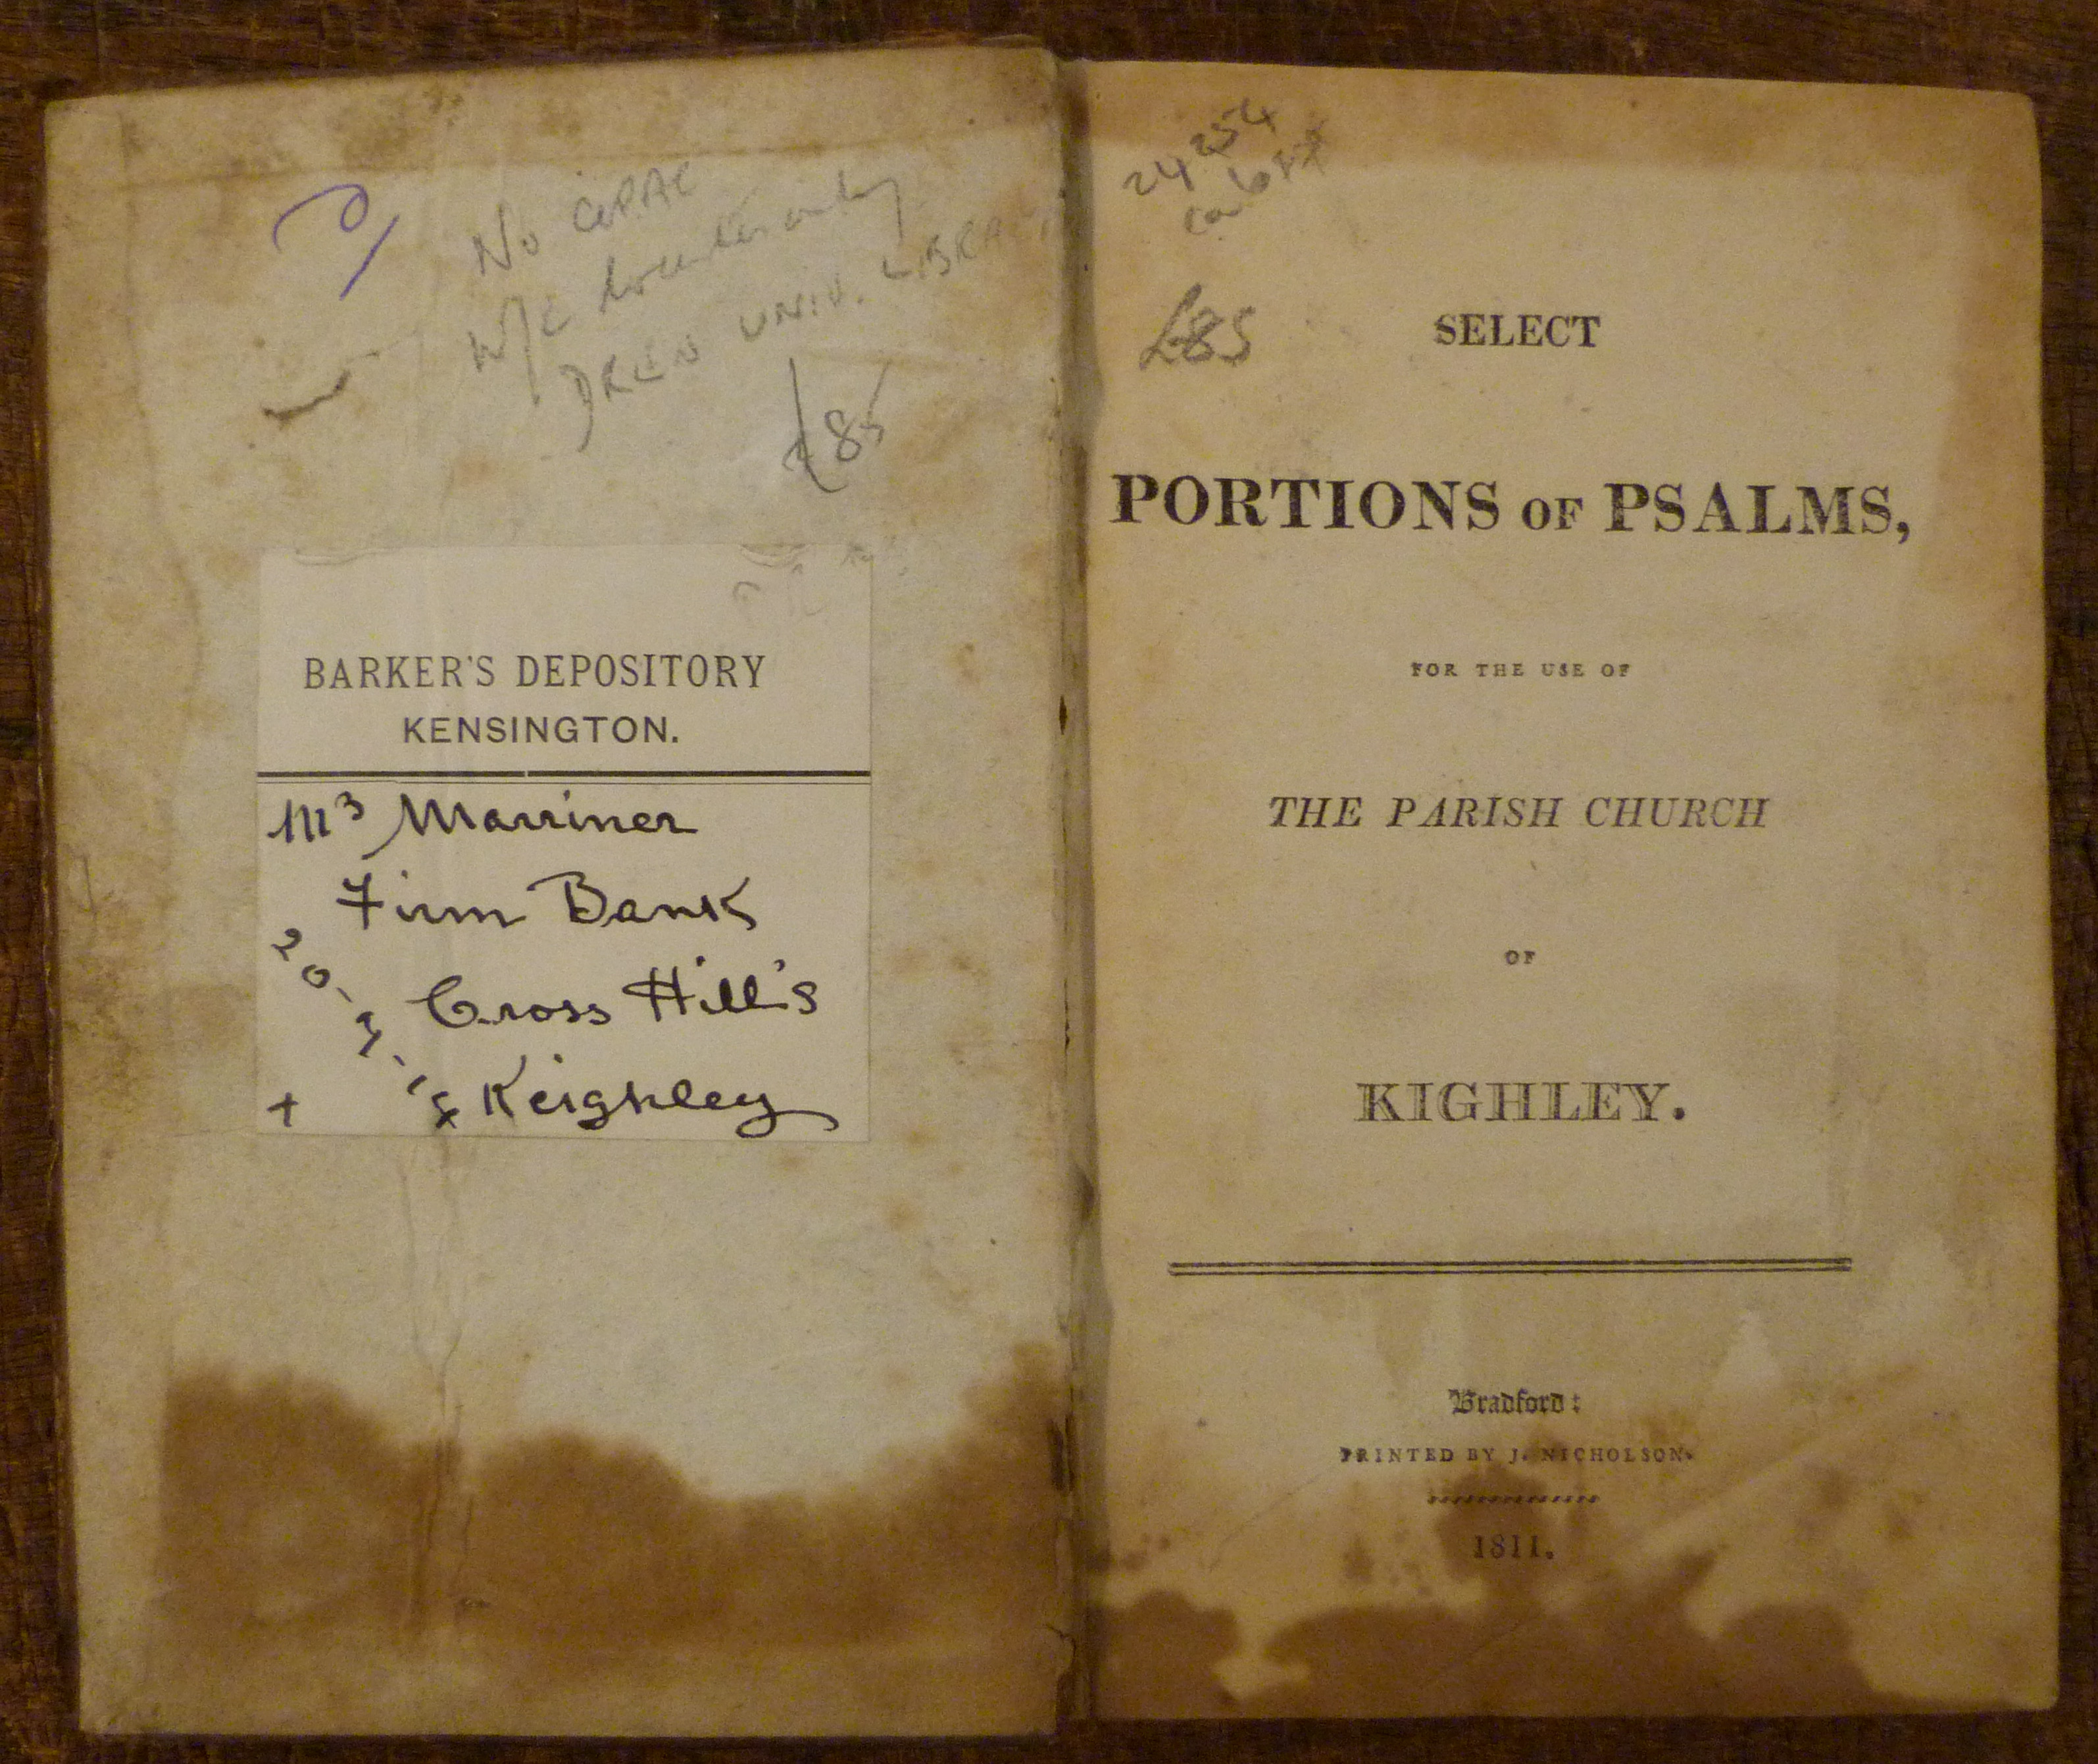 Image for Select Portions of Psalms for the Use of the Parish Church of Kighley